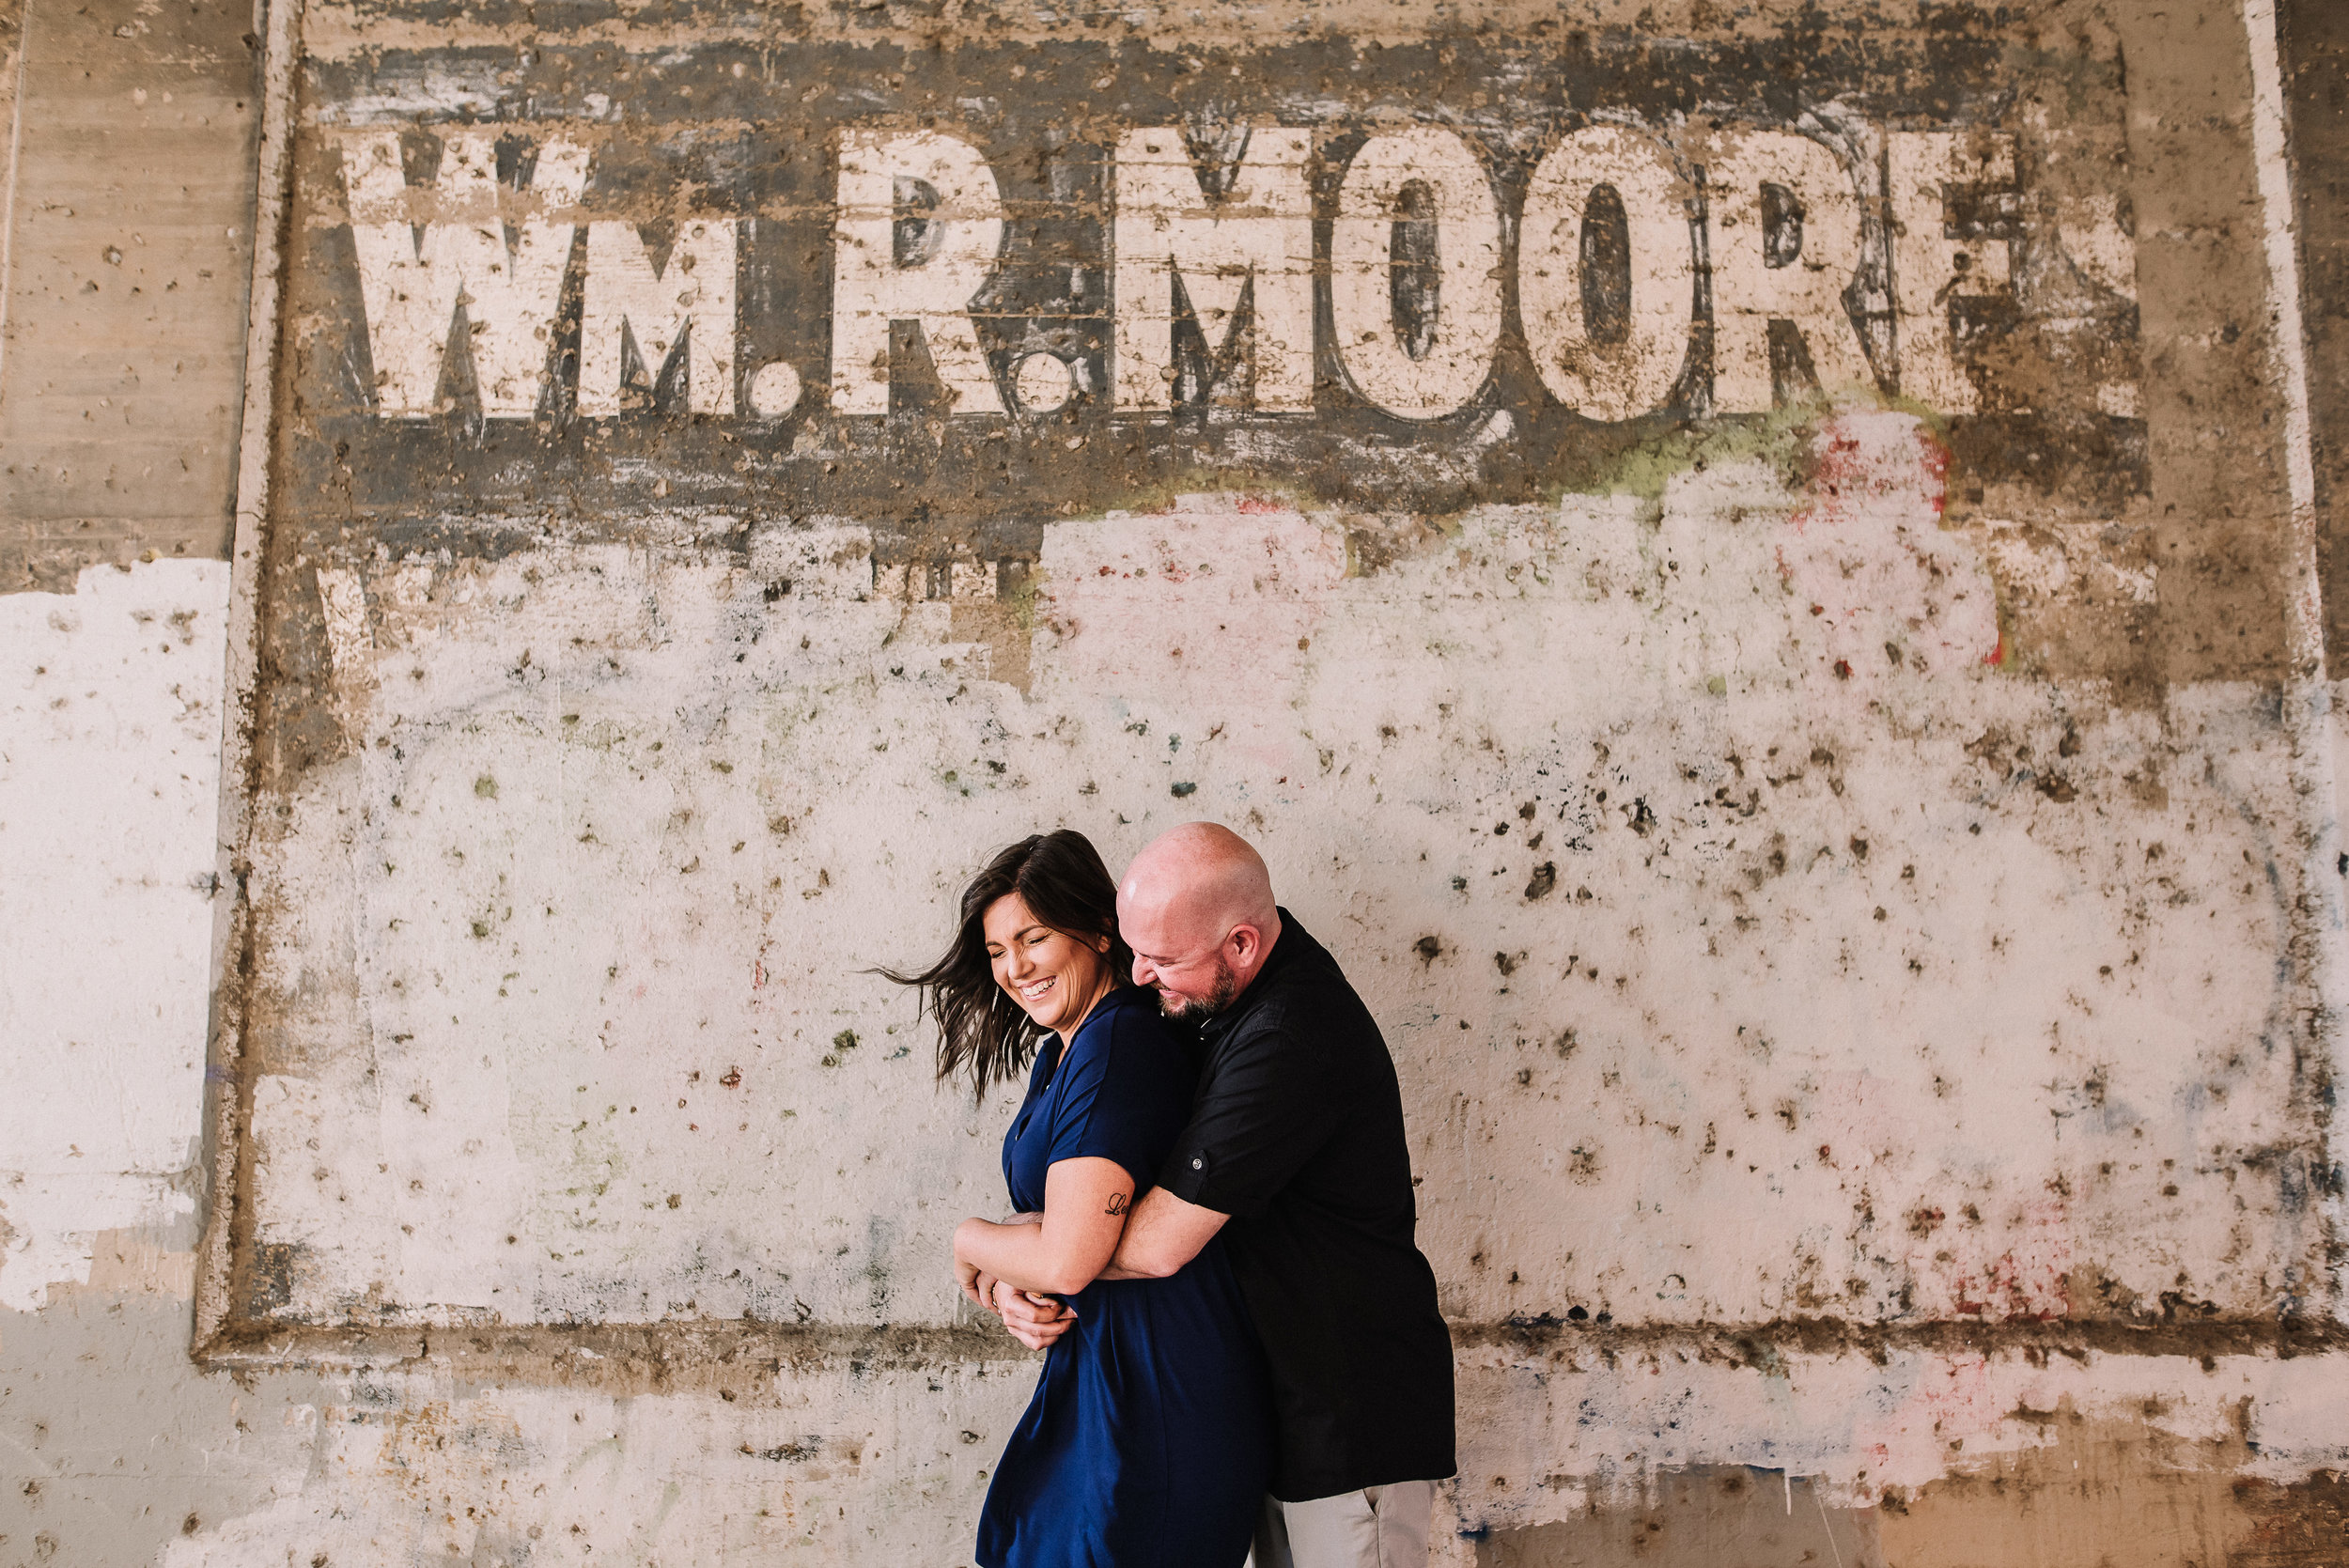 Melissa+Andy_Downtown-Memphis-Engagement-Session_Ashley-Benham-Photography-4959.jpg